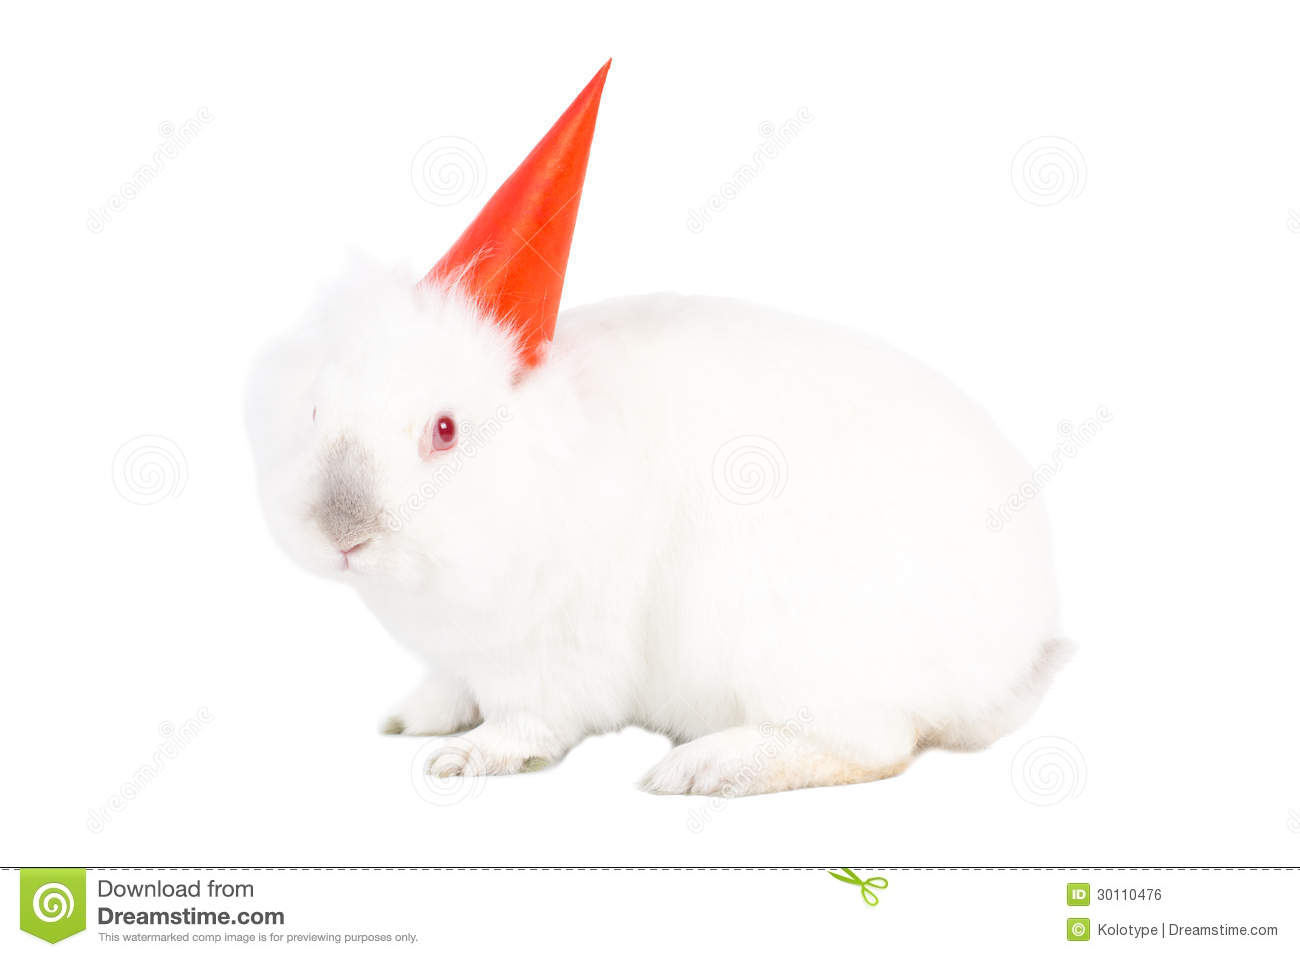 Boyfriend Birthday Quotes additionally Coloring Cards in addition Attractive Outlining Drawing Happy Birthday Daddy furthermore Collectionbdwn Bunny Birthday Hat as well Happy Birthday Special Person. on happy birthday fiance